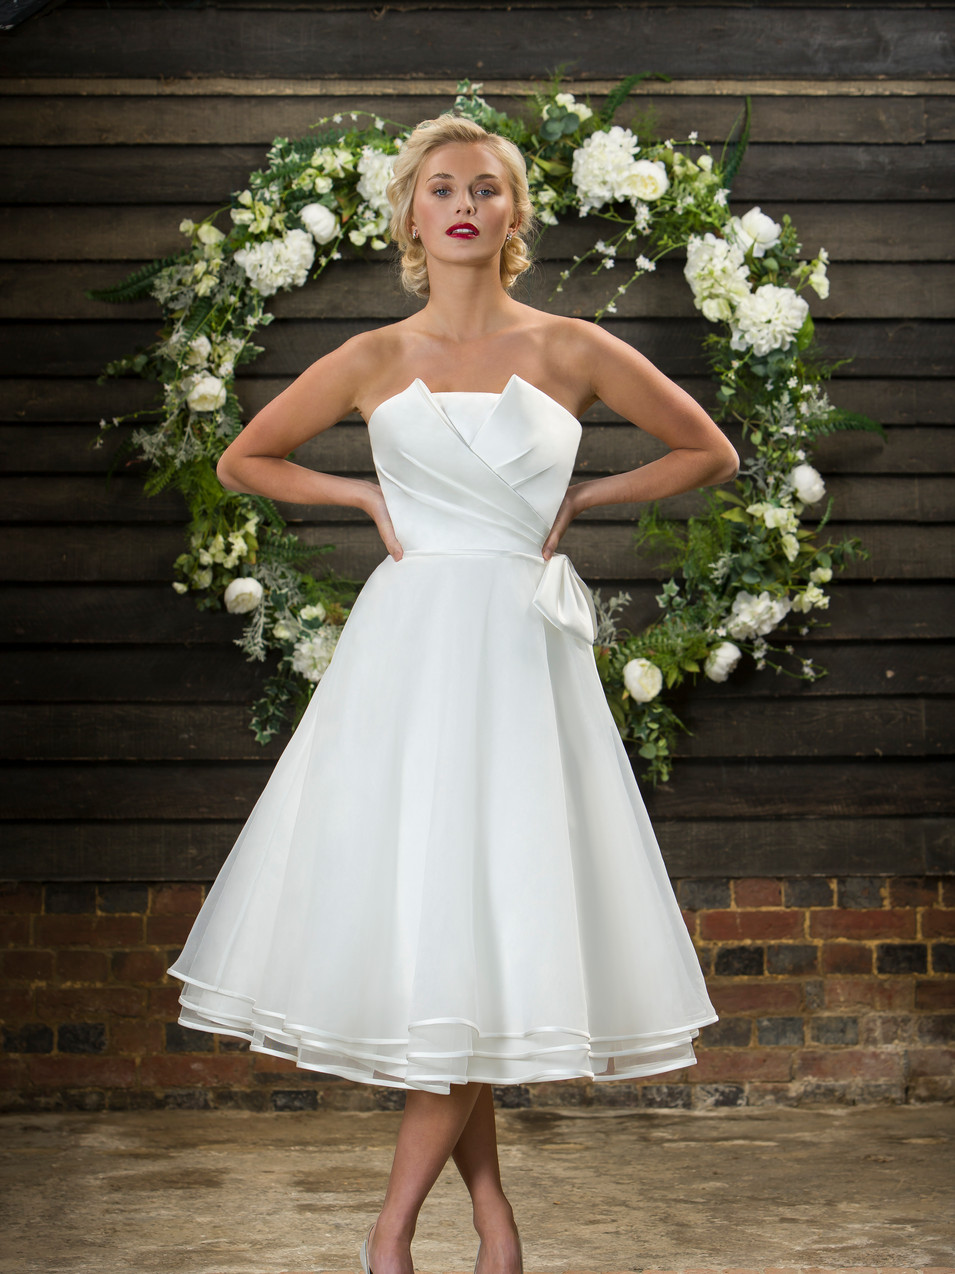 Marcela by Brighton Belle - £799